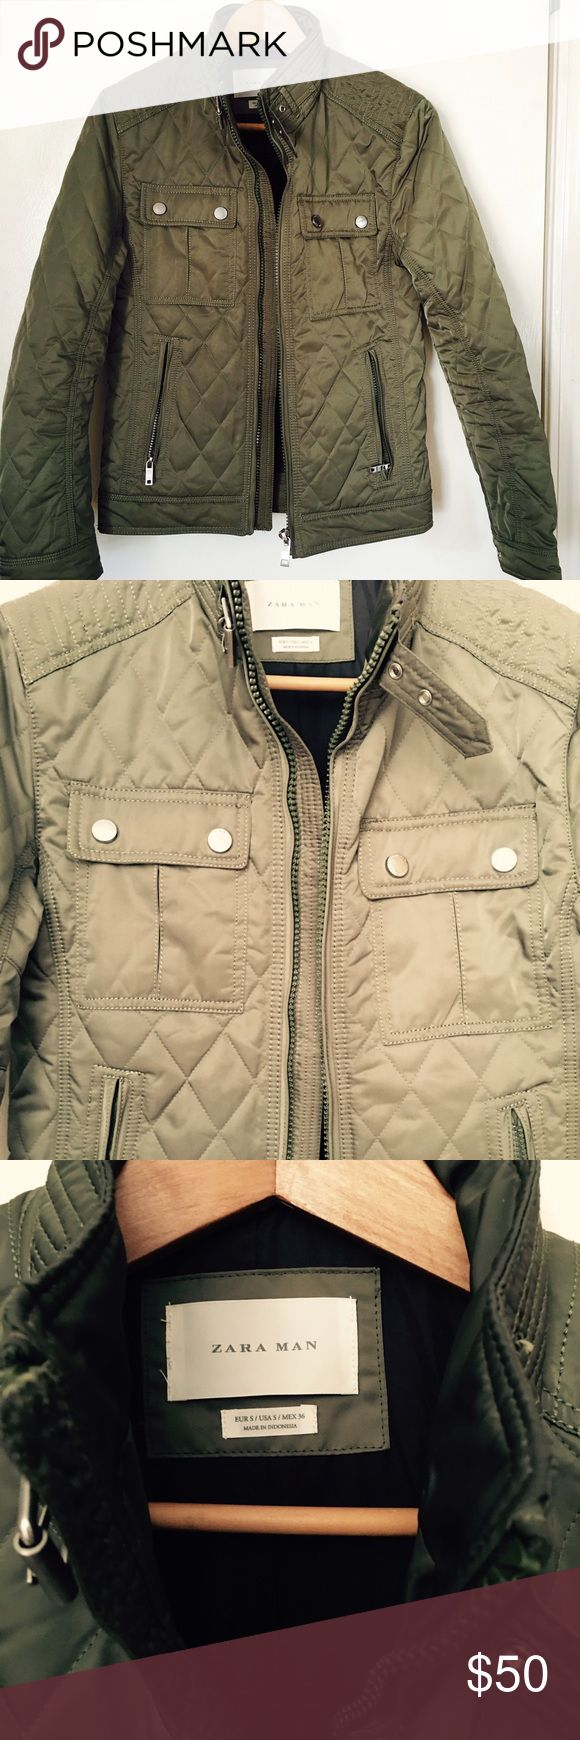 Quilted jacket Hunter green quilted jacket with silver details Zara Man Jackets & Coats Lightweight & Shirt Jackets